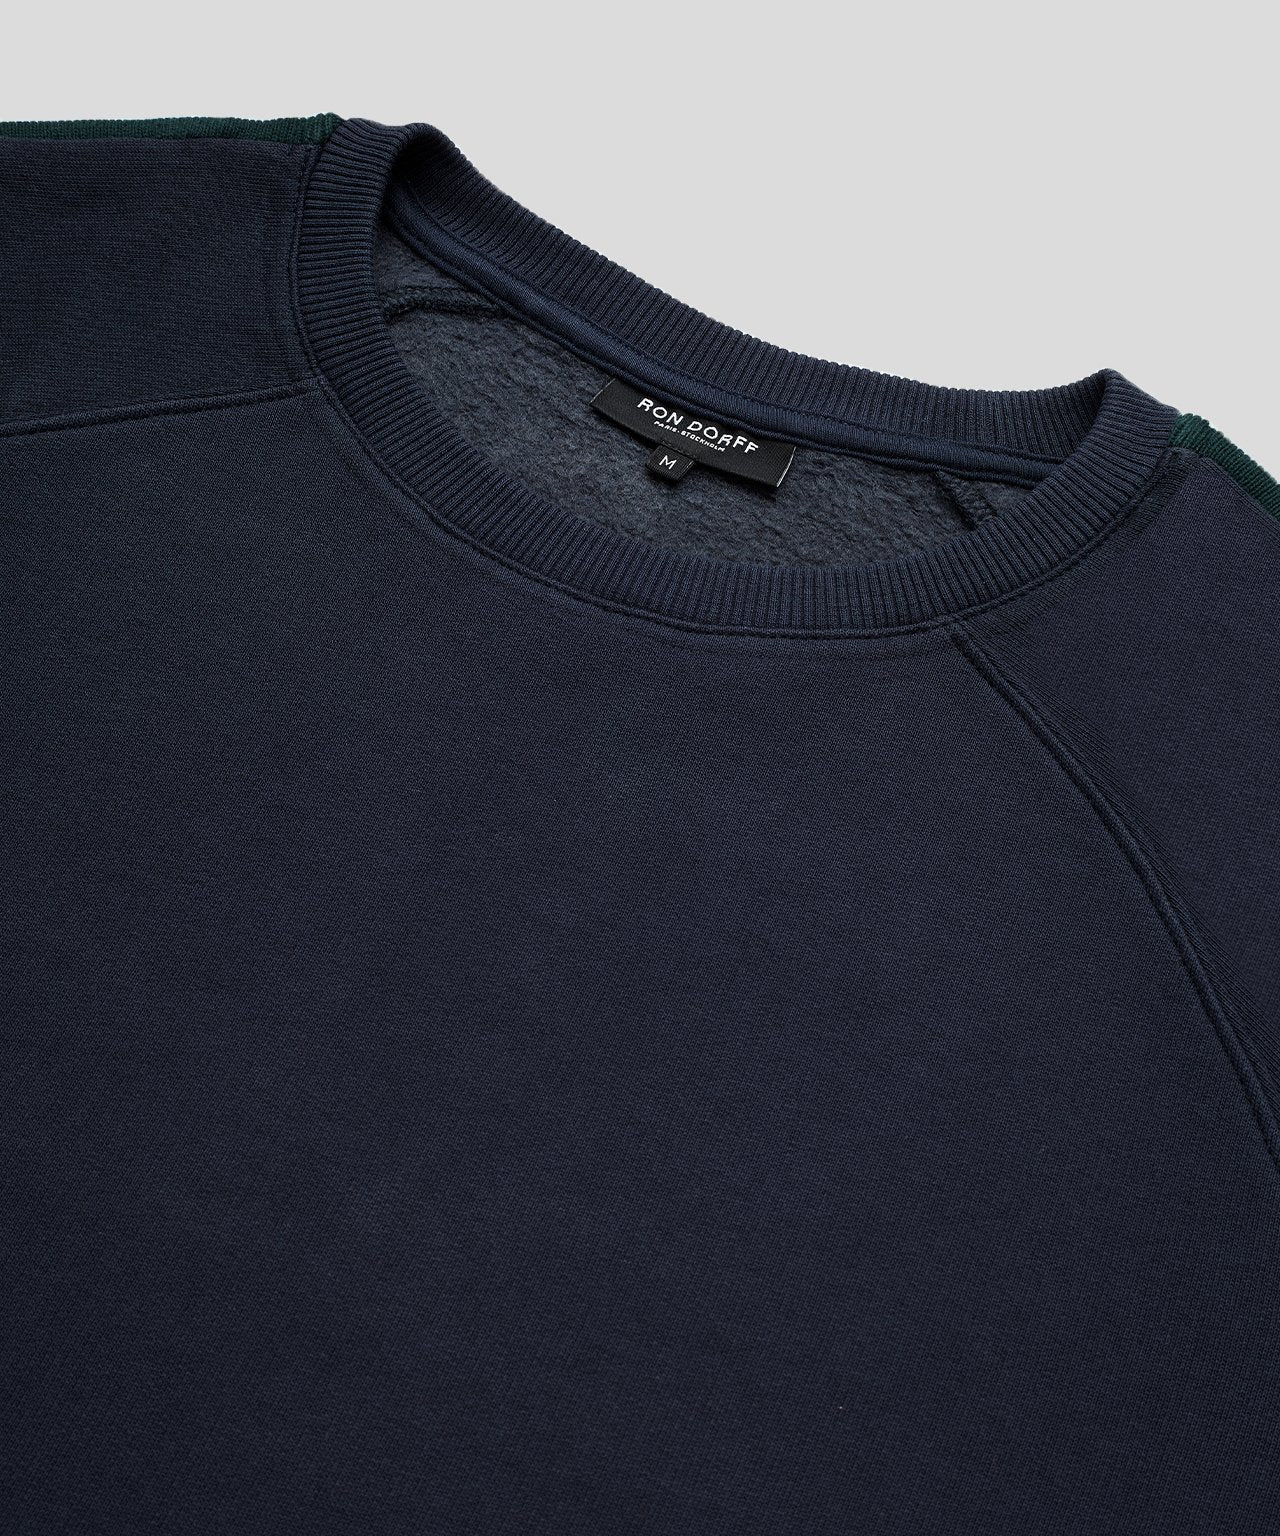 Sweatshirt Sides Stripes - navy